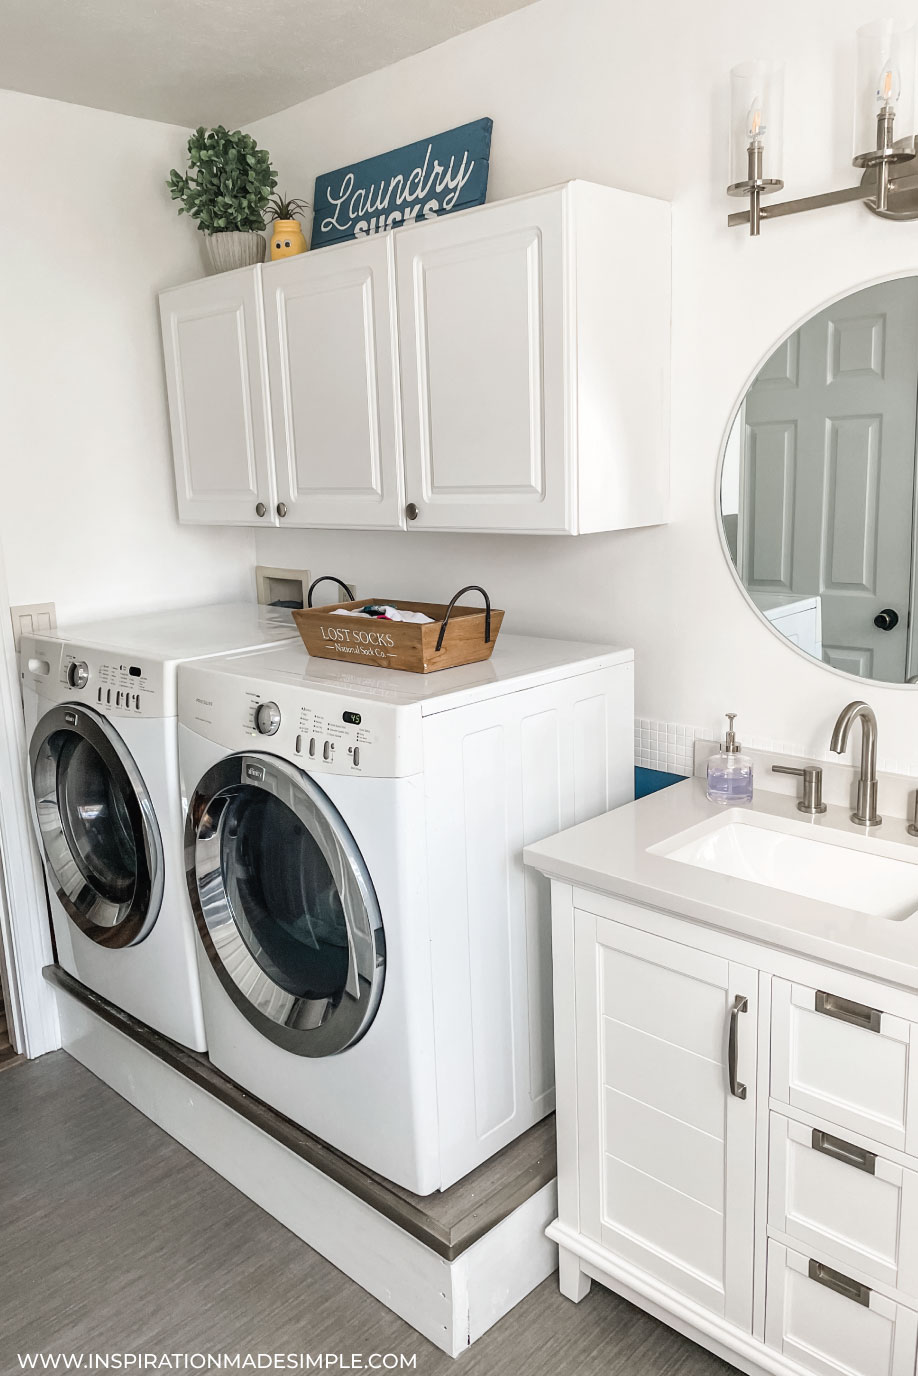 Light and airy bathroom/laundry room